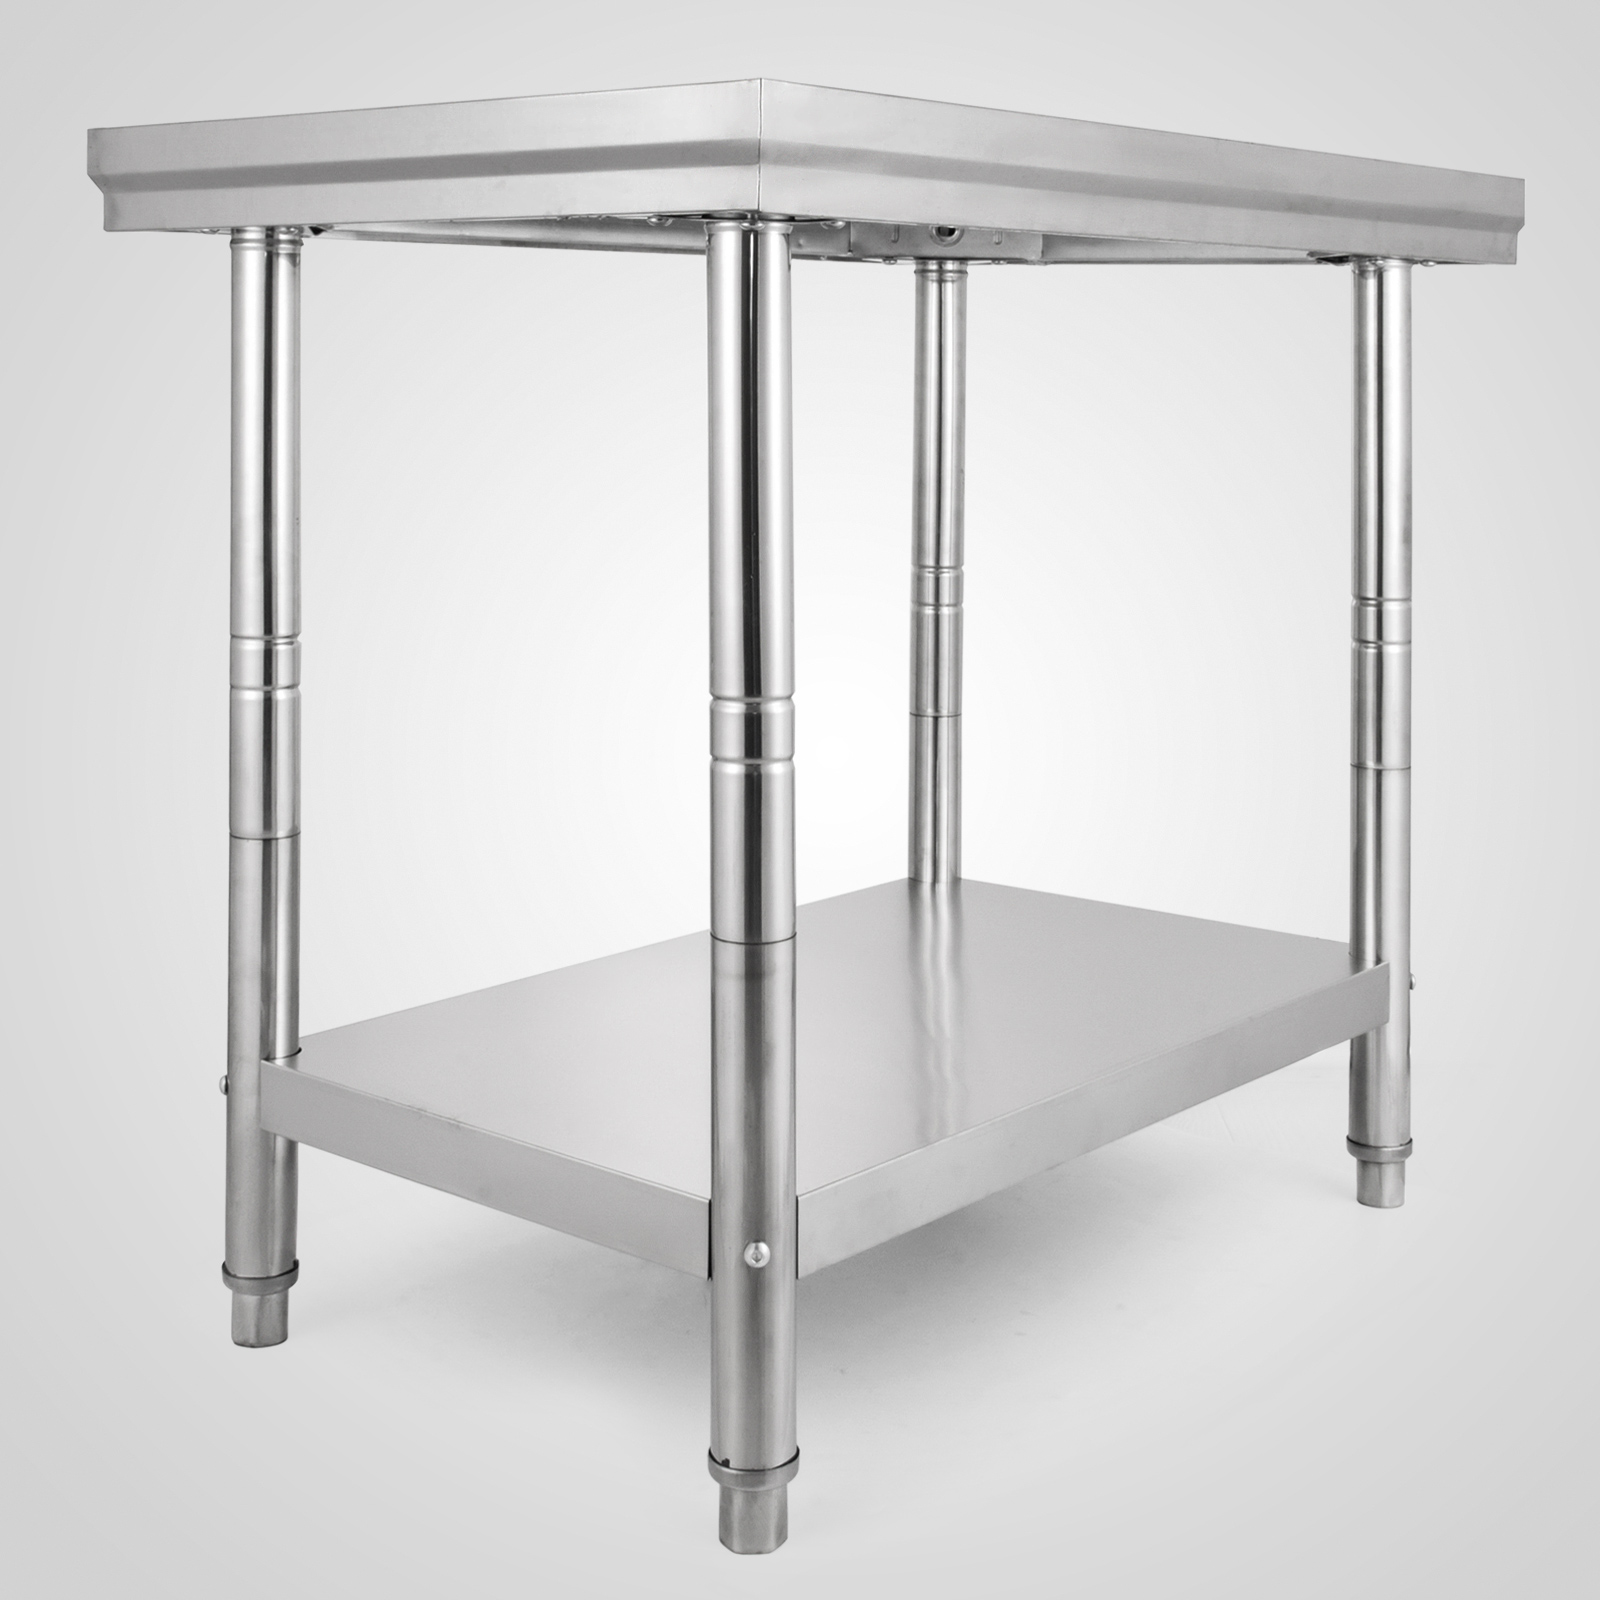 Industrial Kitchen Prep Table: Commercial Stainless Steel Work Bench Kitchen Catering